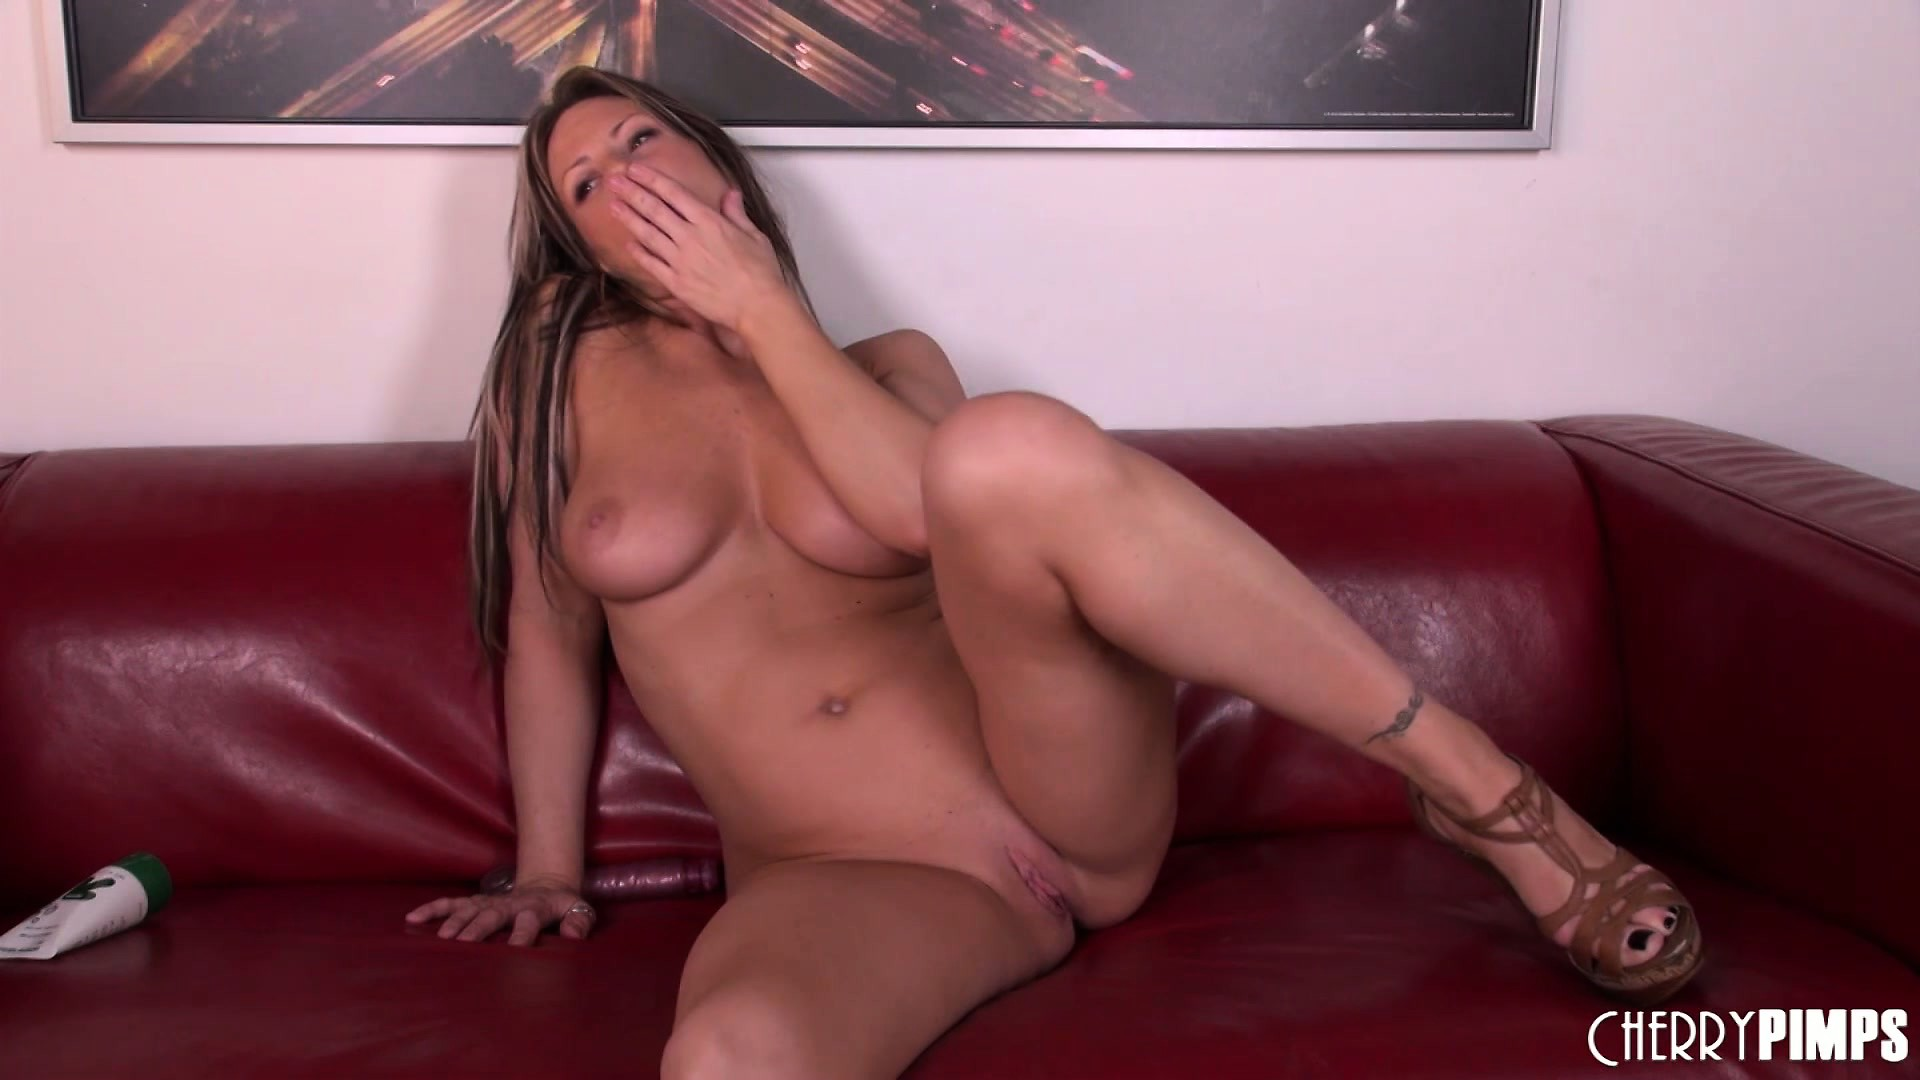 Porn Tube of Carolyn Is The Proud Owner Of Big Natural Tits, A Perfect Ass And Sexy Long Legs